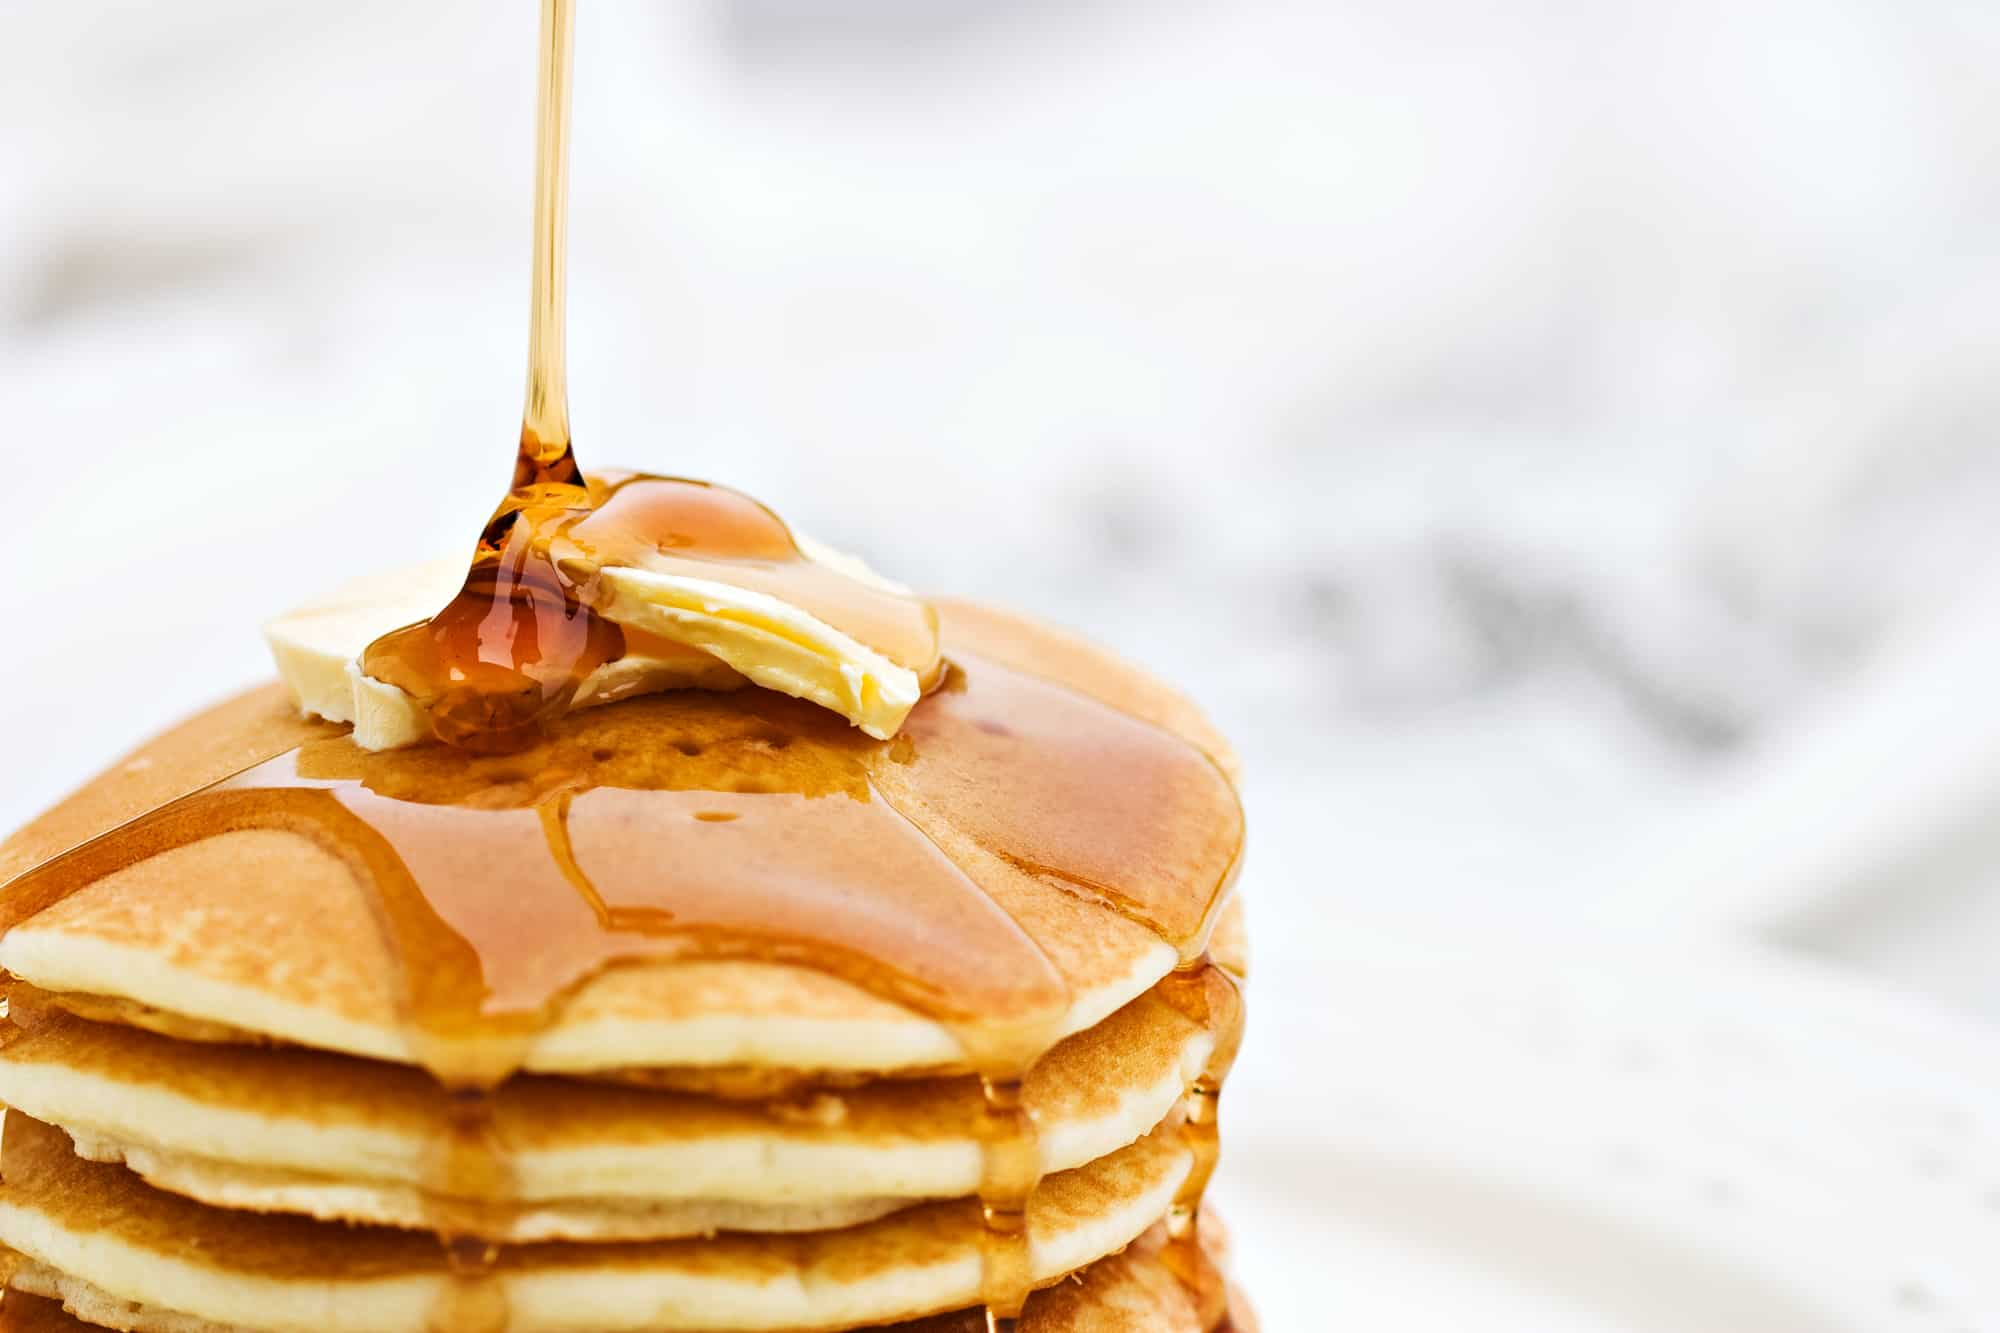 best breakfast in burlington VT header image - stack of golden pancakes with syrup dripping on them, white blurred background